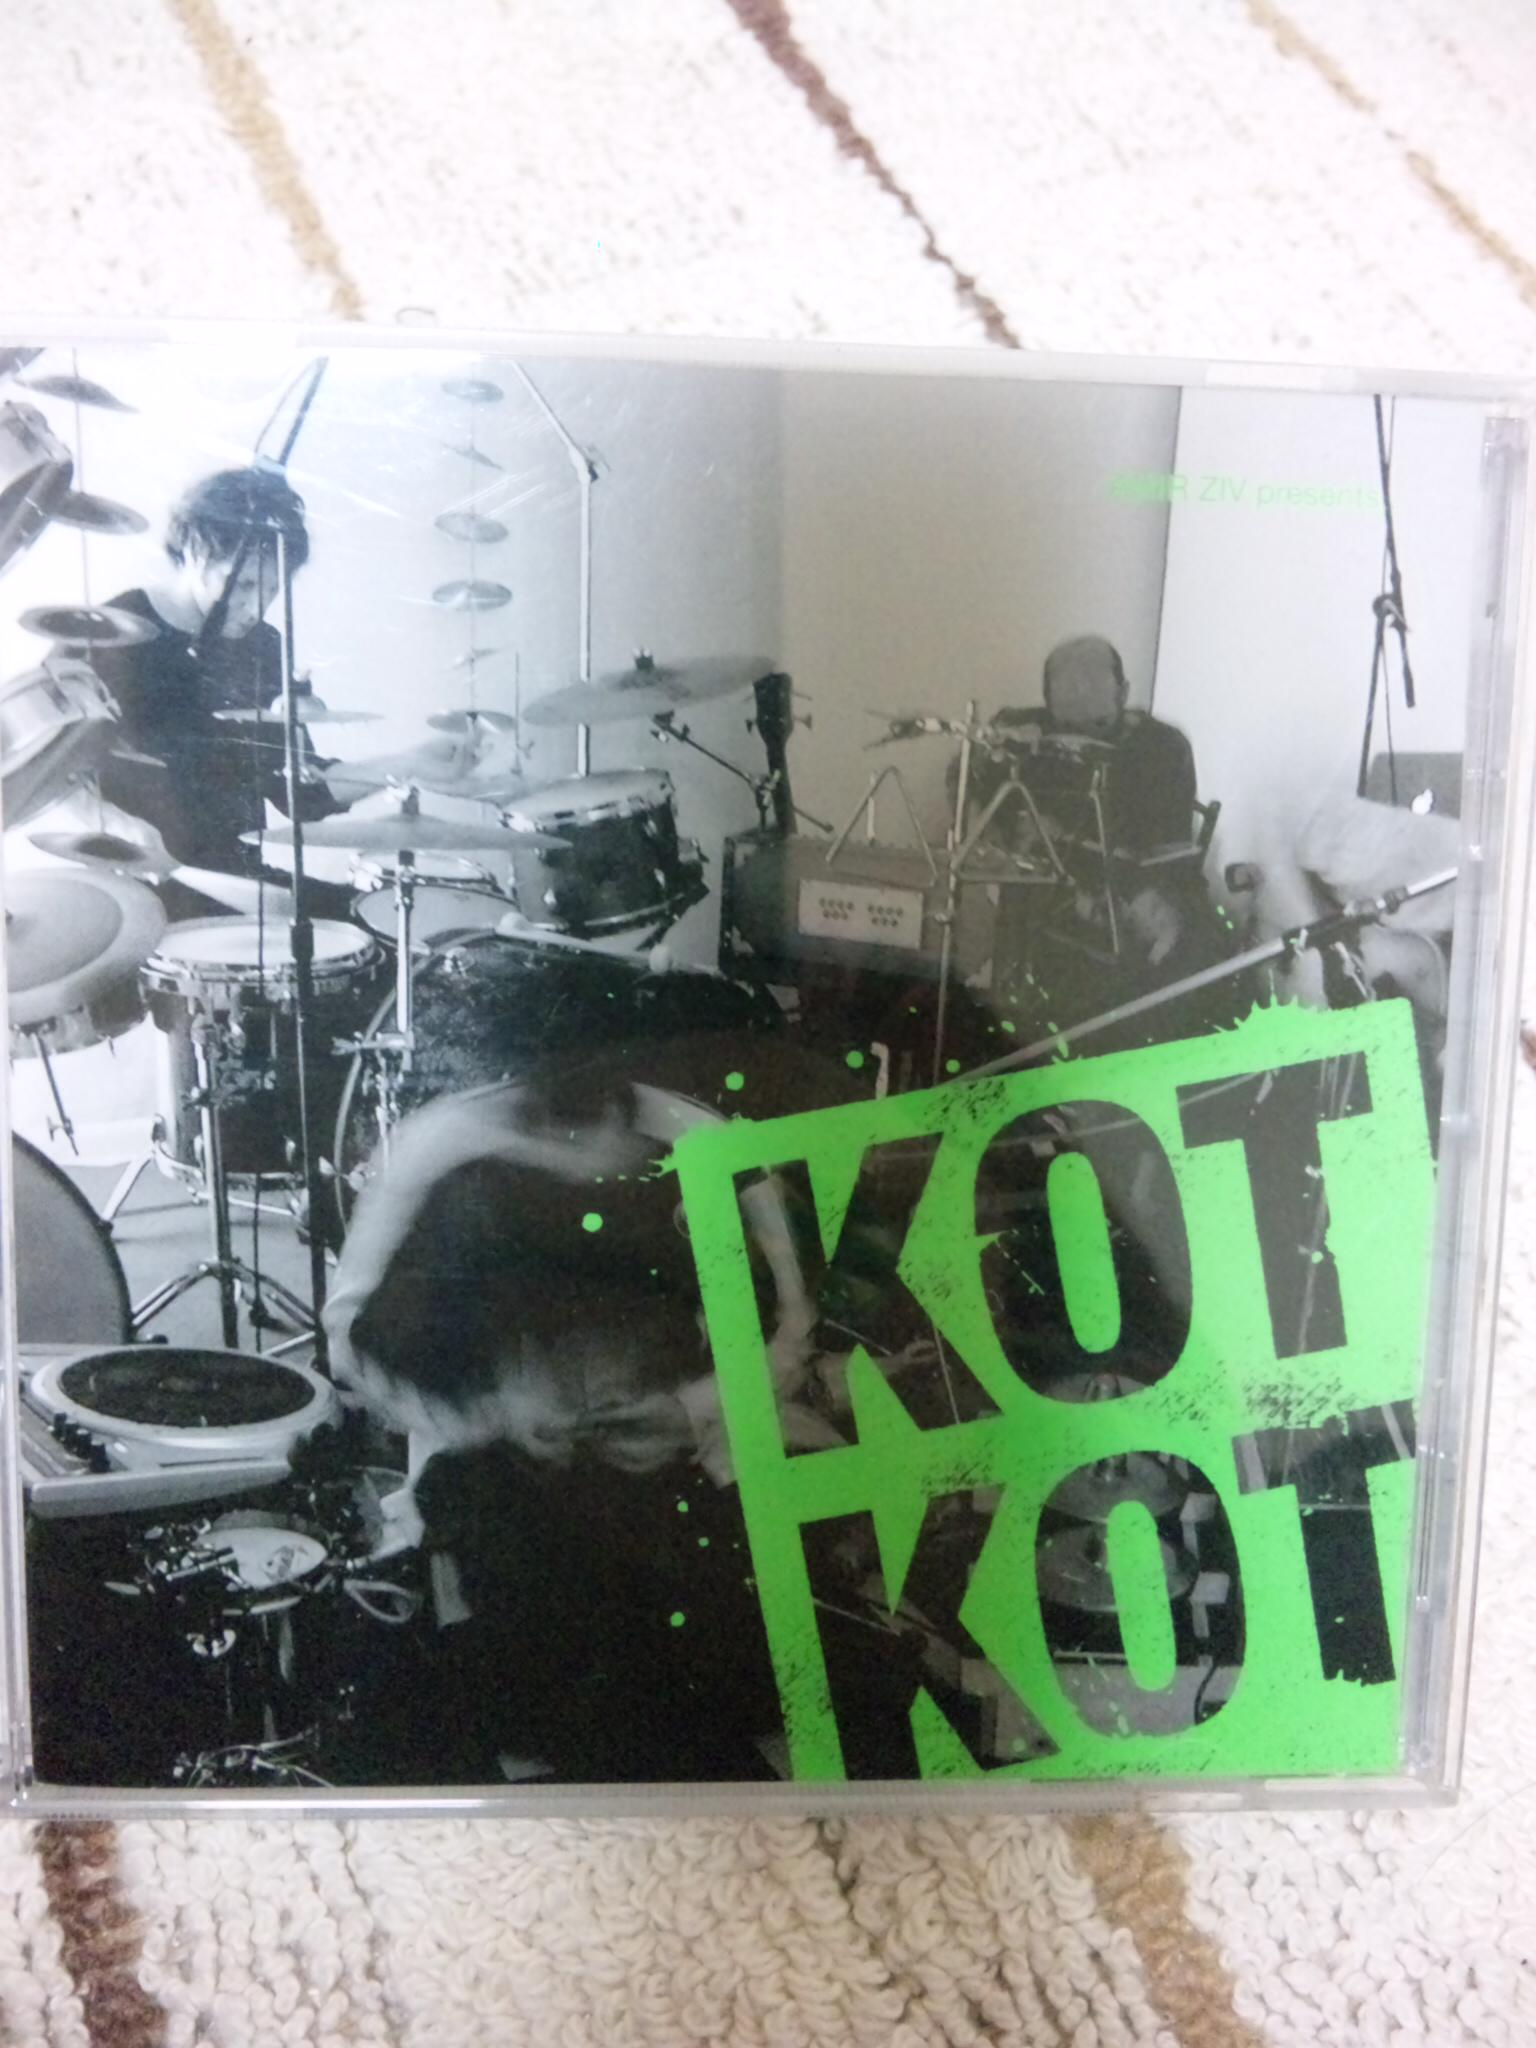 KOTKOT; ALIVE AT TONIC